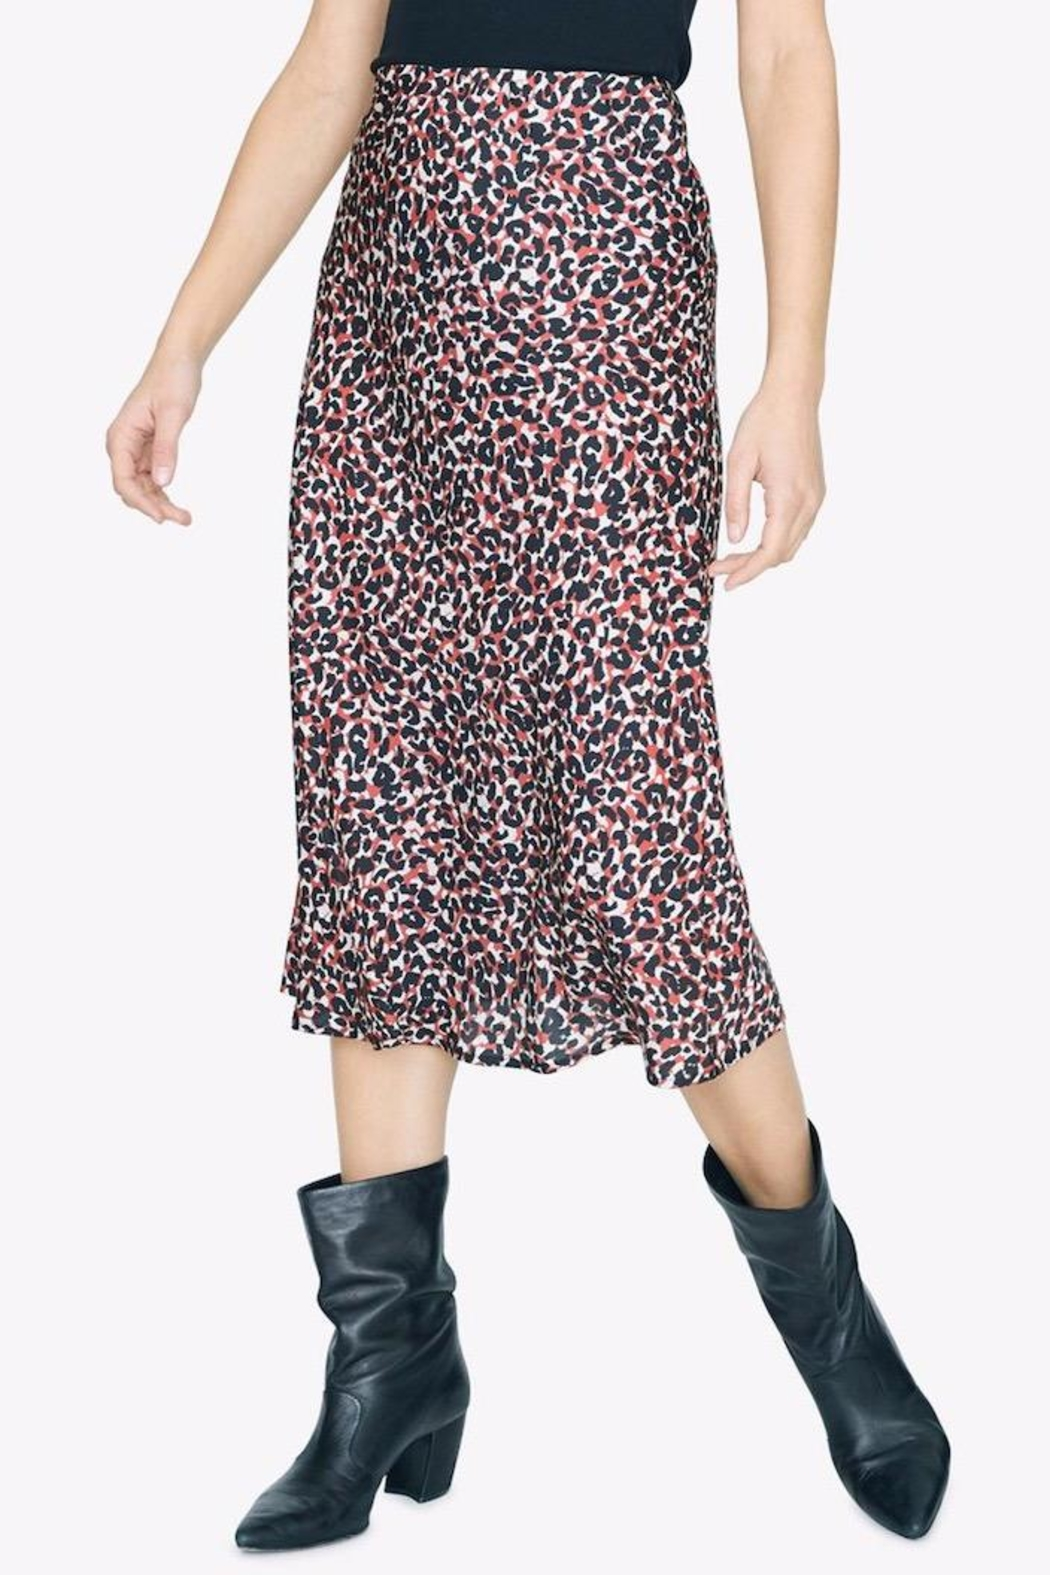 Sanctuary Cheetah Print Skirt - Side Cropped Image